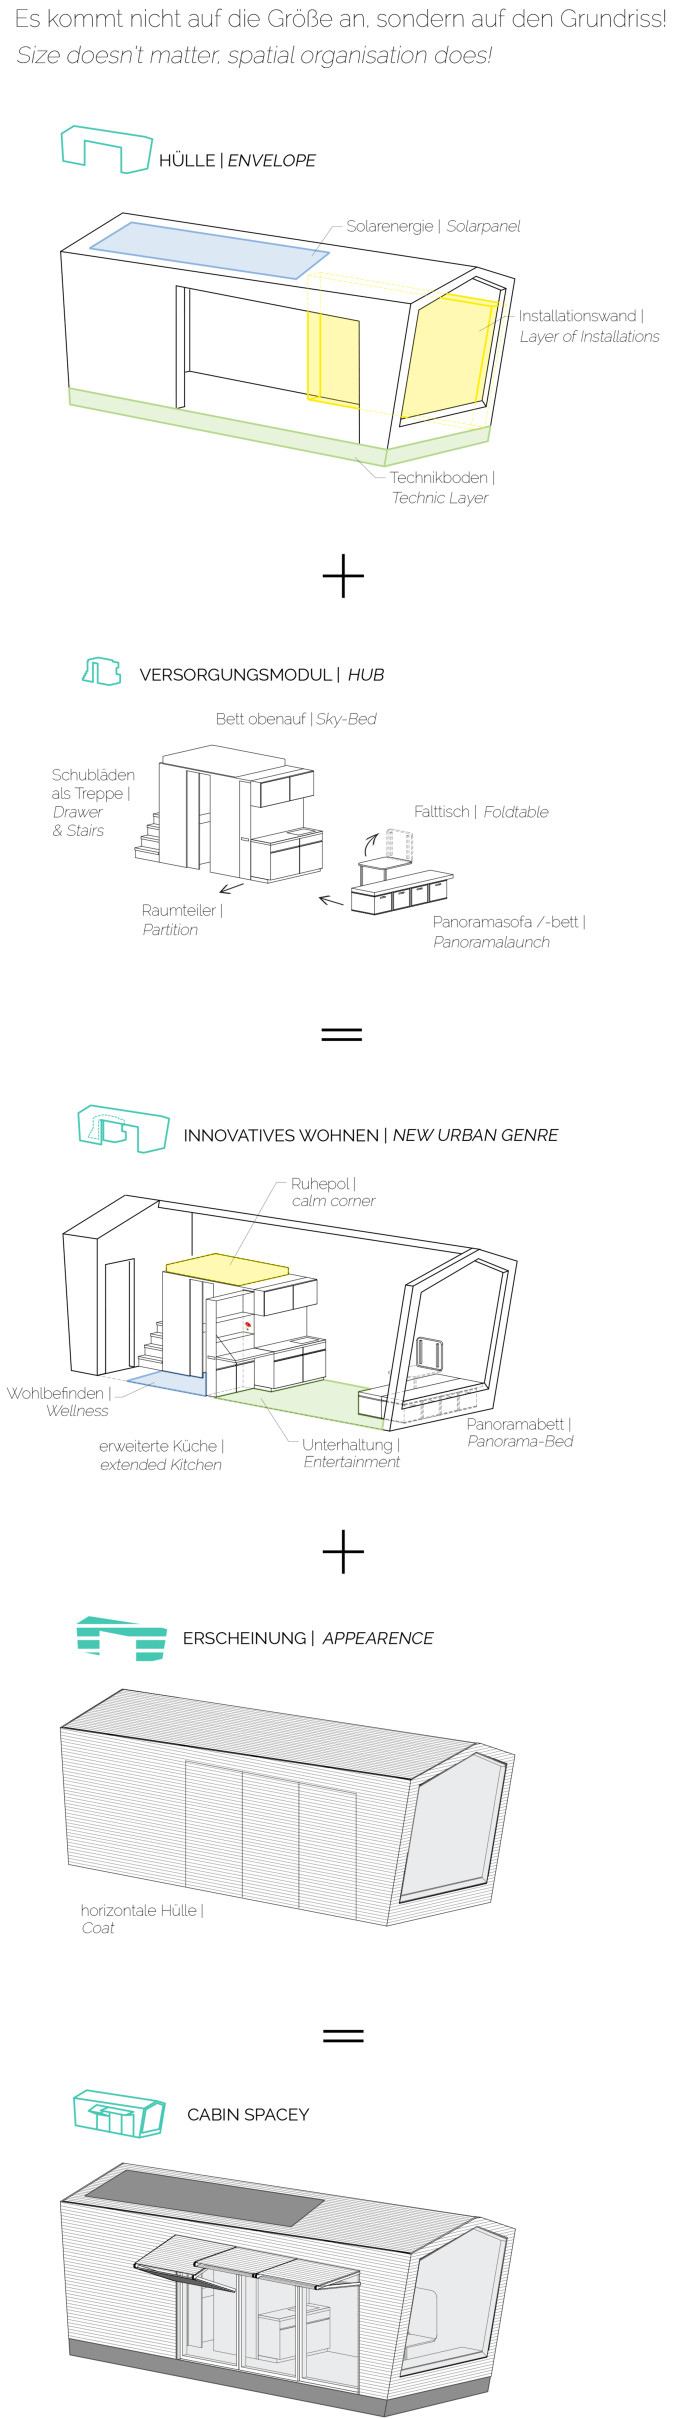 CABIN SPACEY - HOME ANYWHERE! smart urban pioneers | Indiegogo